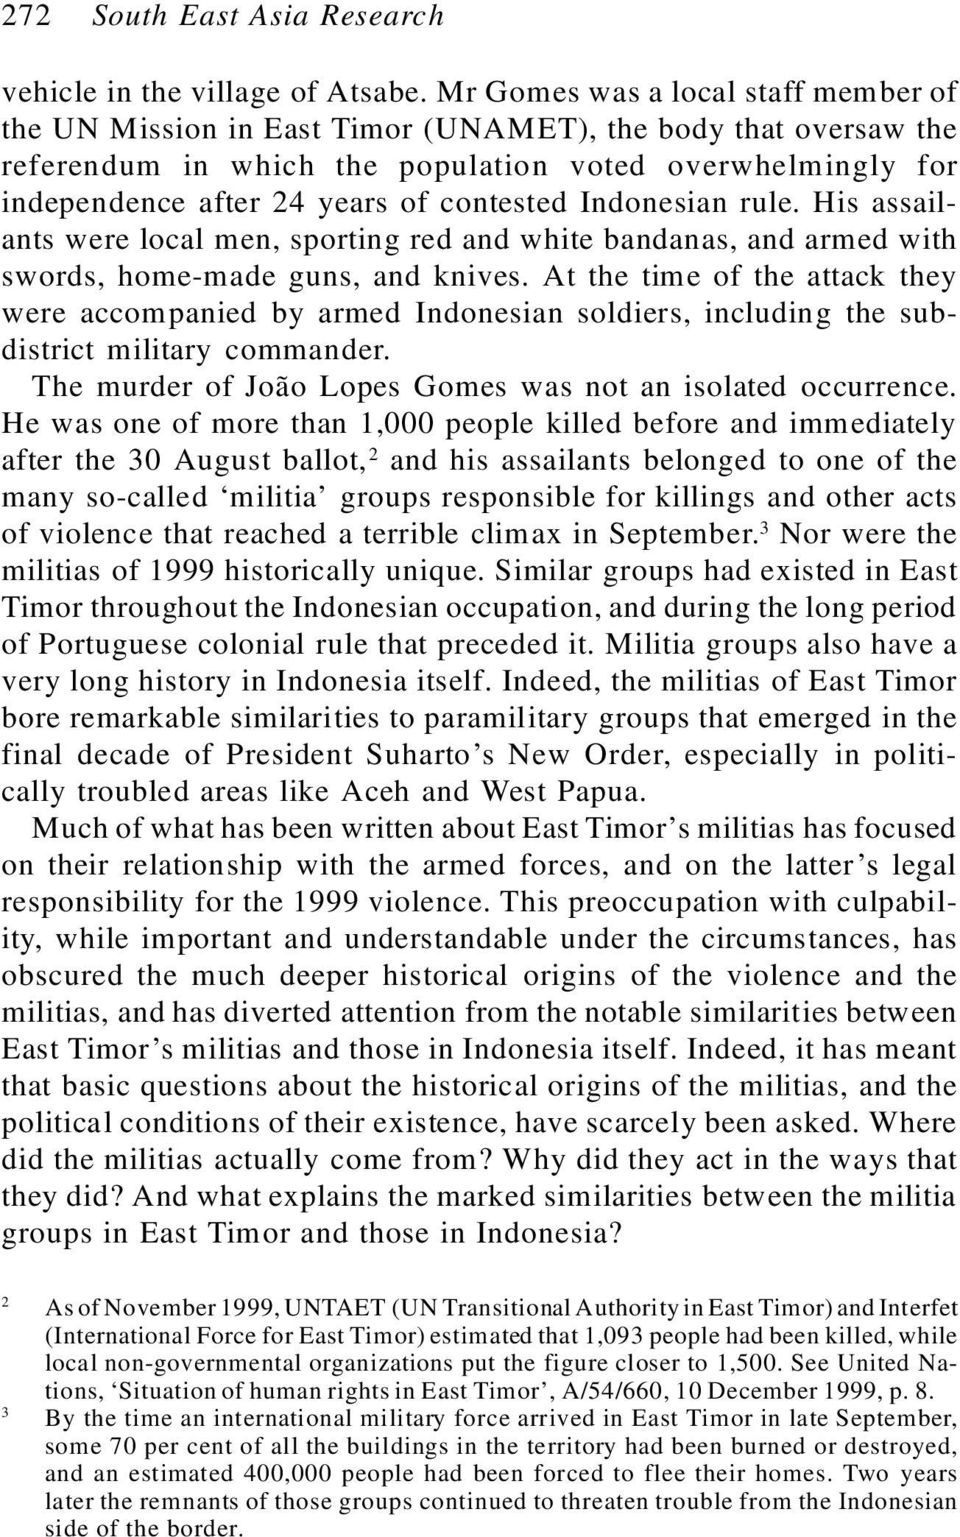 contested Indonesian rule. His assailants were local men, sporting red and white bandanas, and armed with swords, home-made guns, and knives.